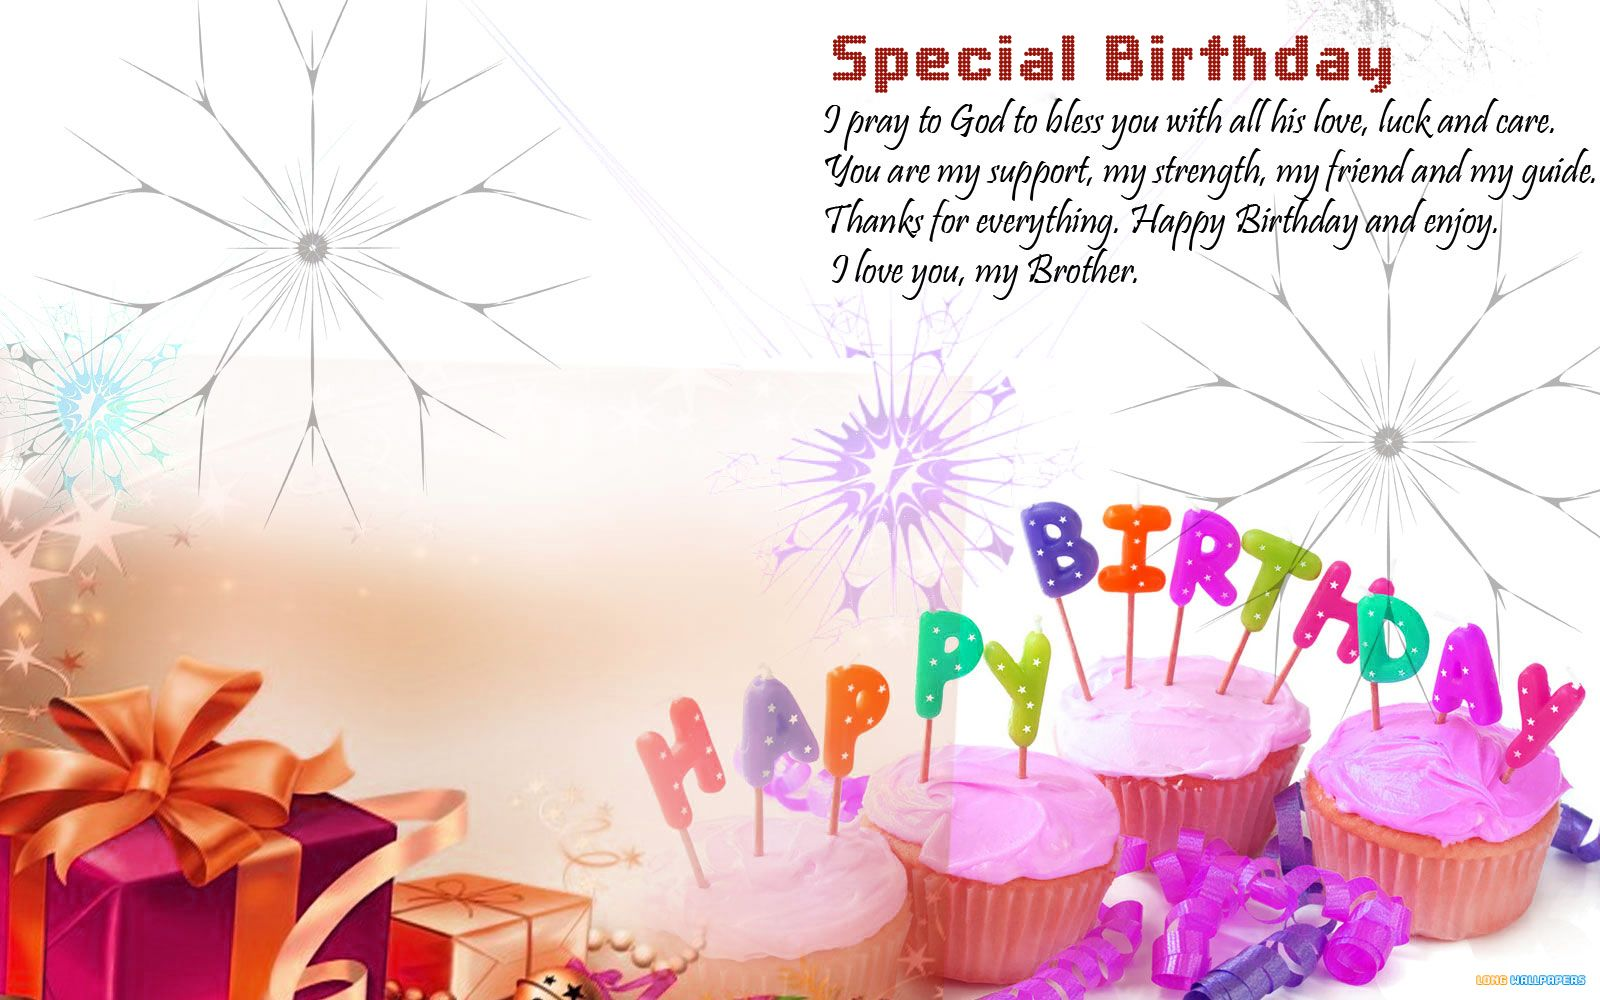 Birthday Invitations By Sms Hd Images 3 HD Wallpapers | Places to ...